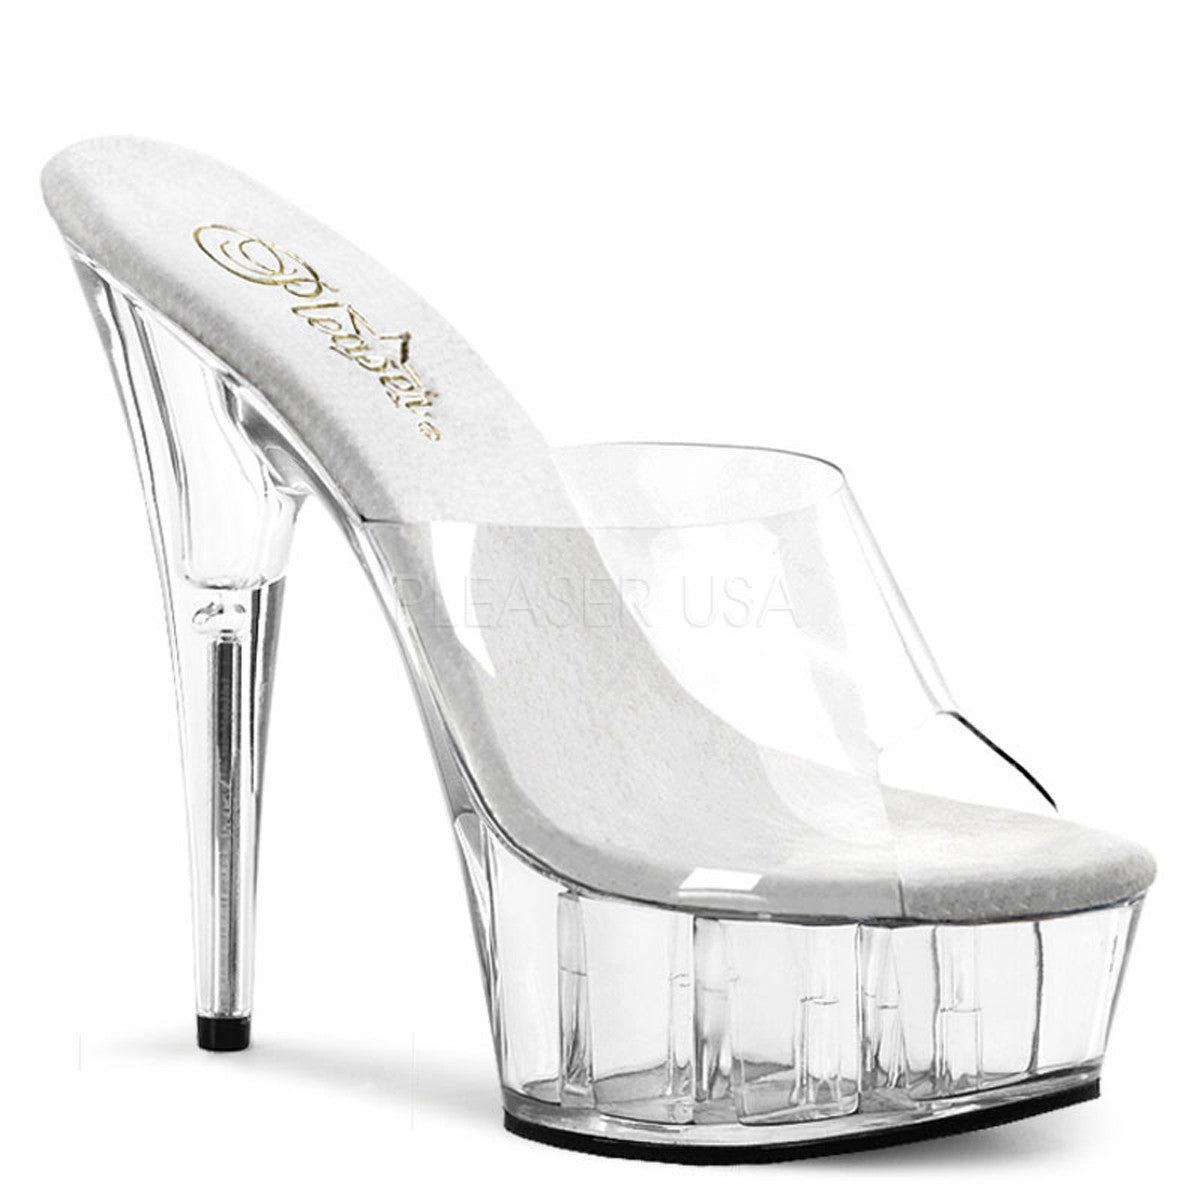 PLEASER DELIGHT-601 Clear Stiletto Slides - Shoecup.com